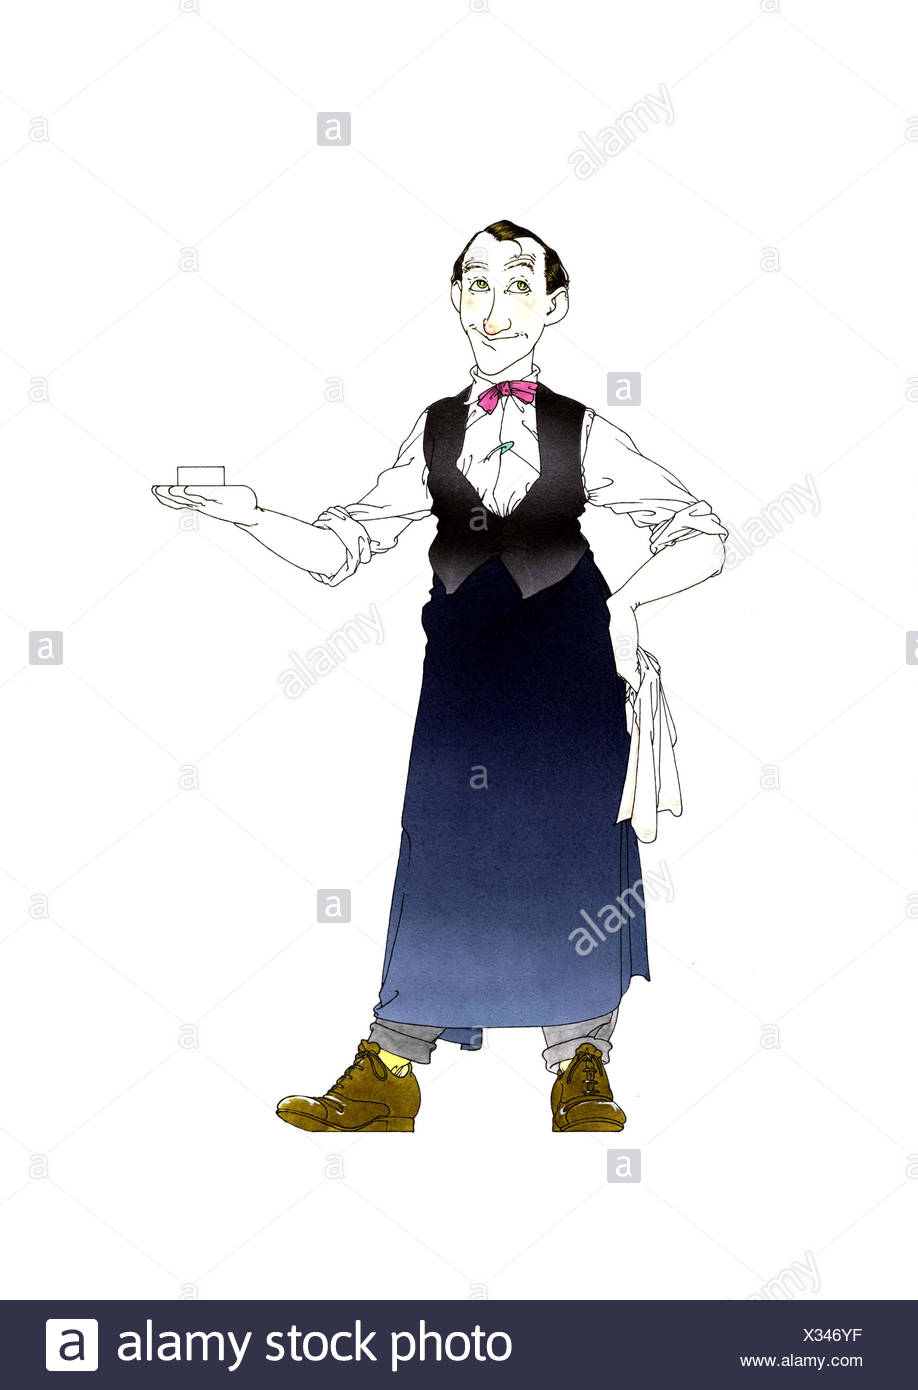 Wine waiter with waistcoat, apron and bow-tie - Stock Image